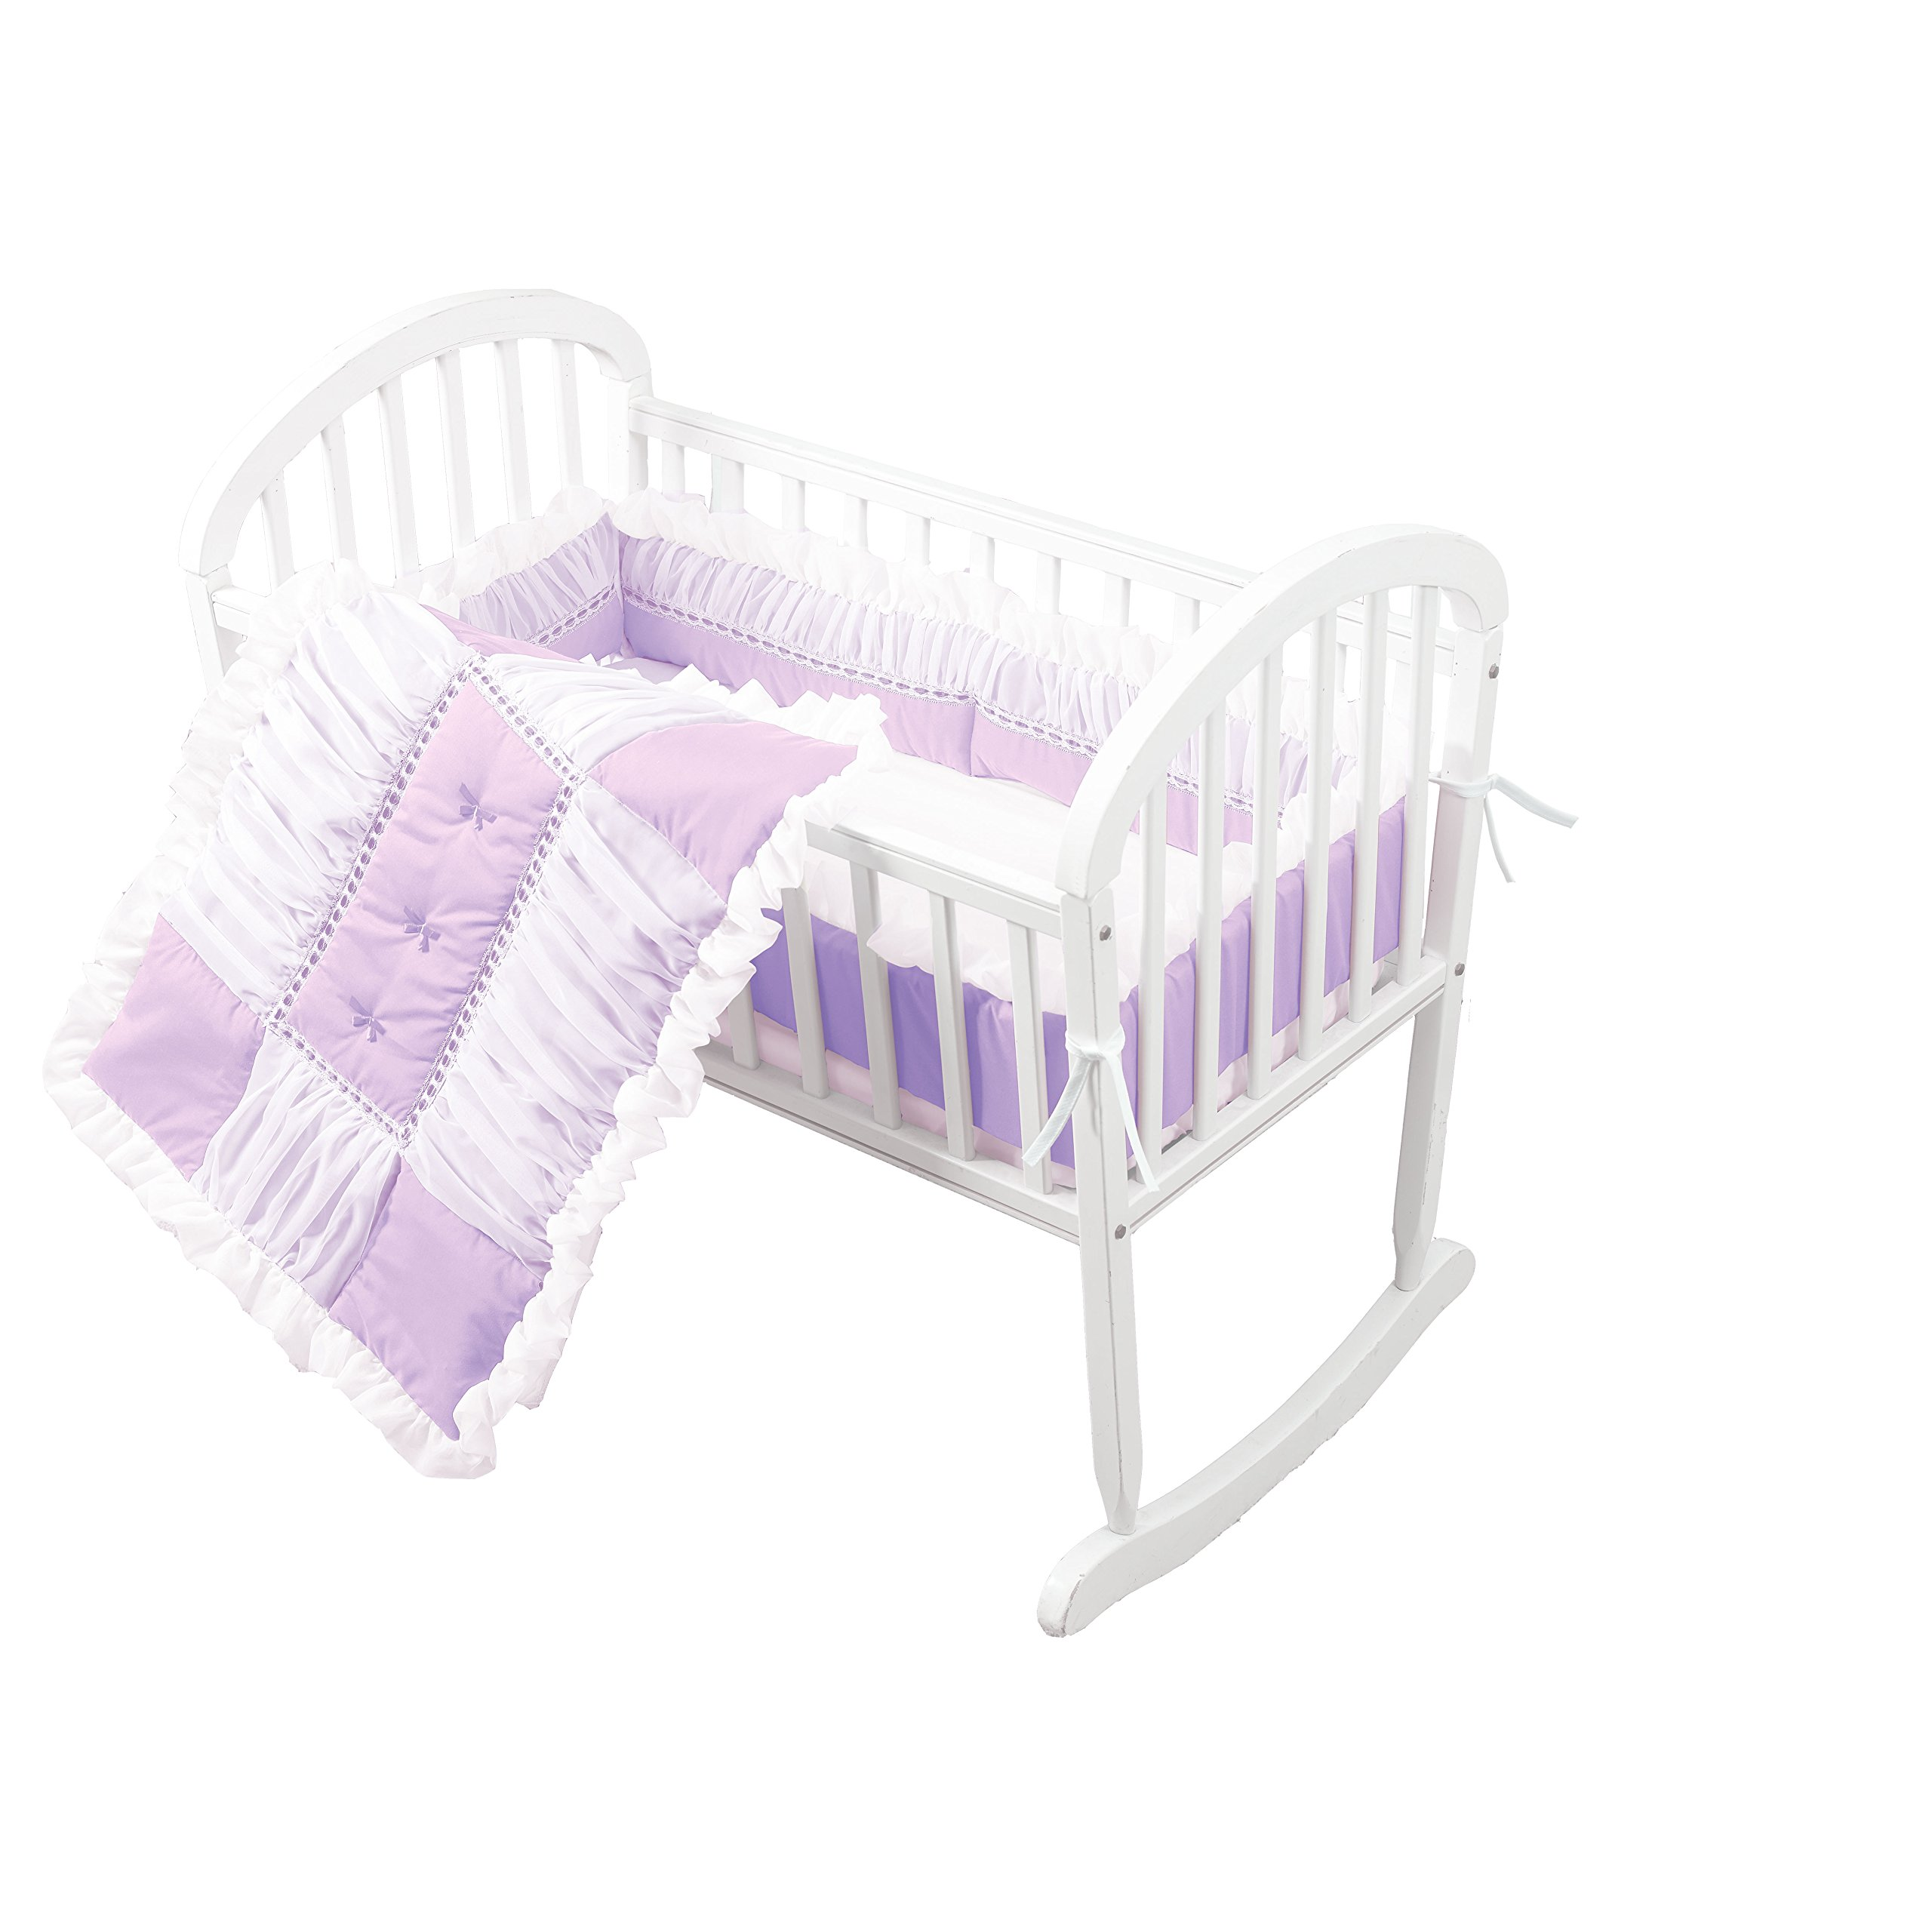 Baby Doll Sweet Touch Baby 3 Piece Cradle Bedding Set, Lavender